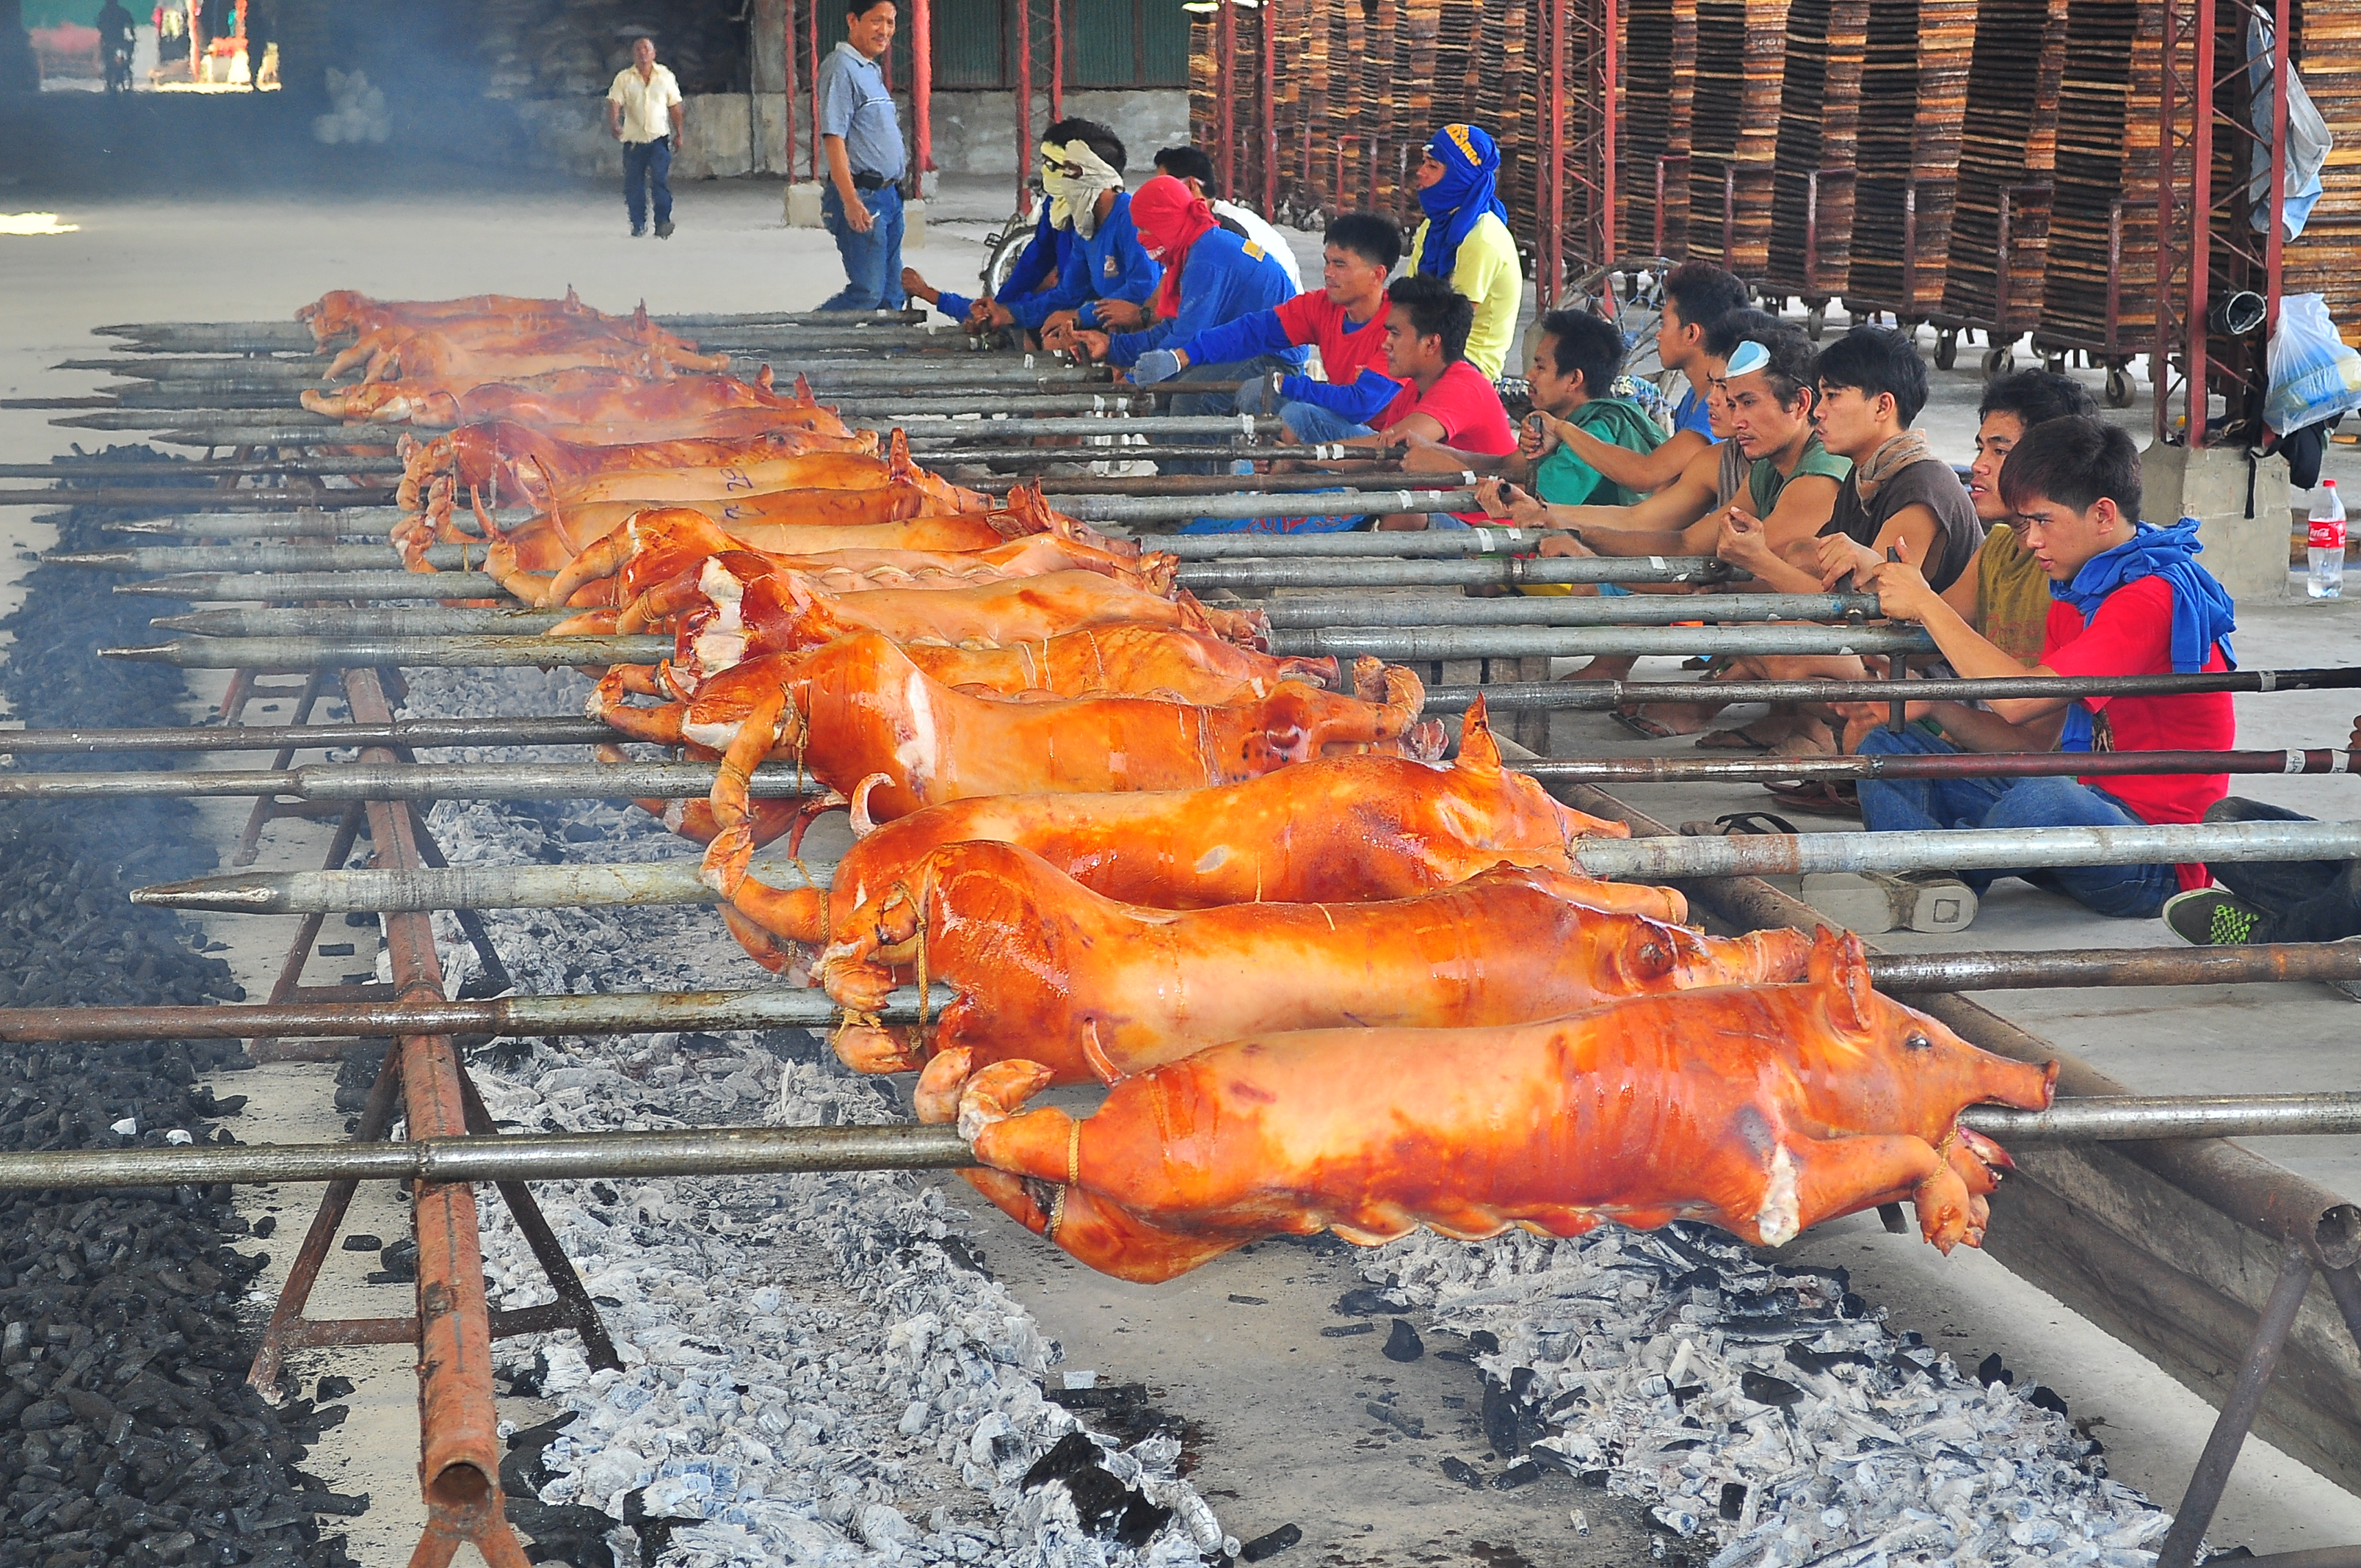 Andrew Zimmern Delicious Destinations Manila - Several pigs being roasted over coals